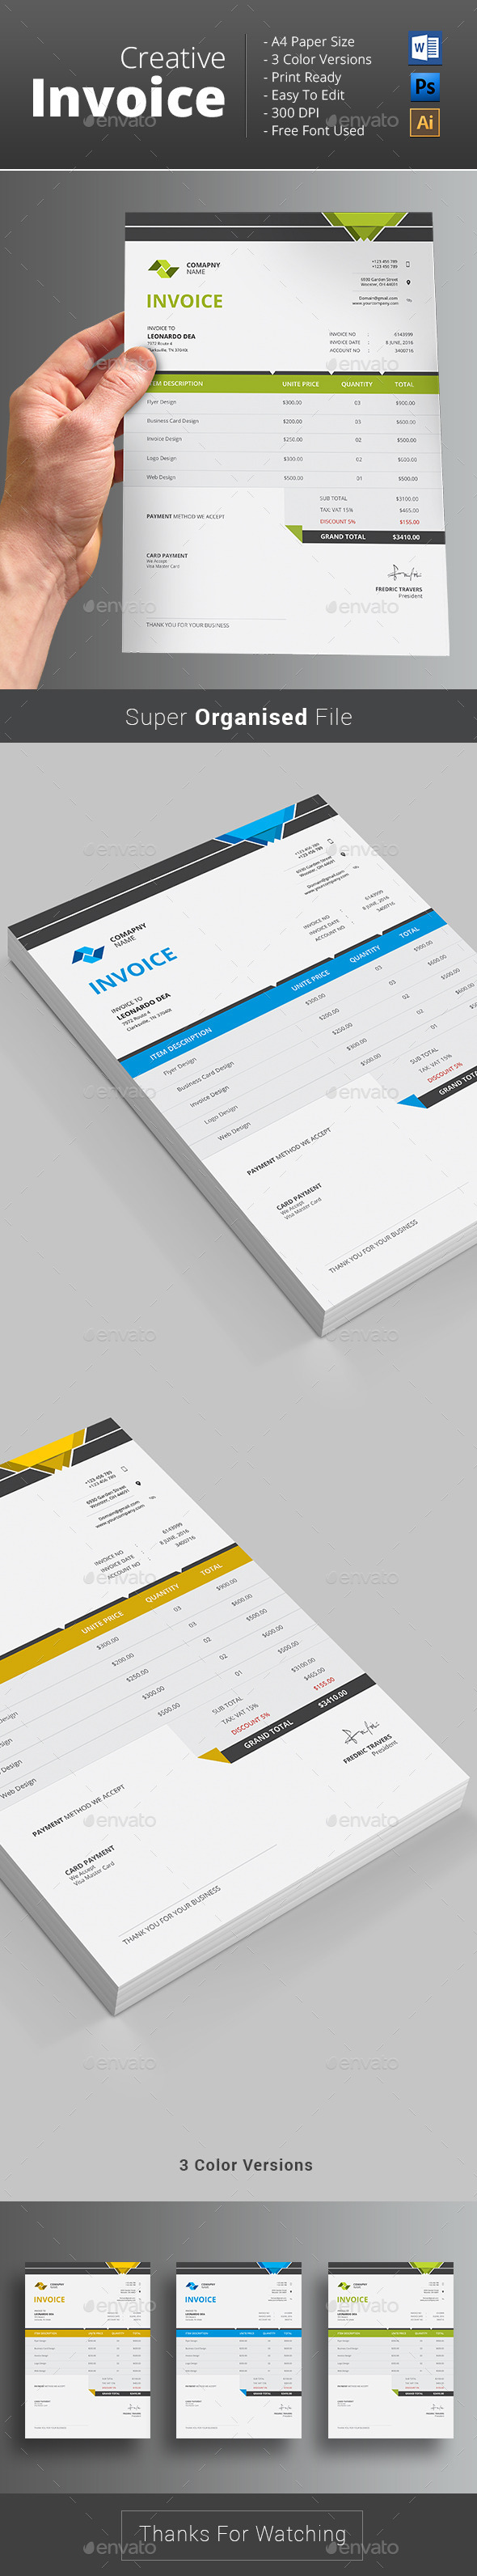 Invoice Proposals u0026 Invoices Stationery Download